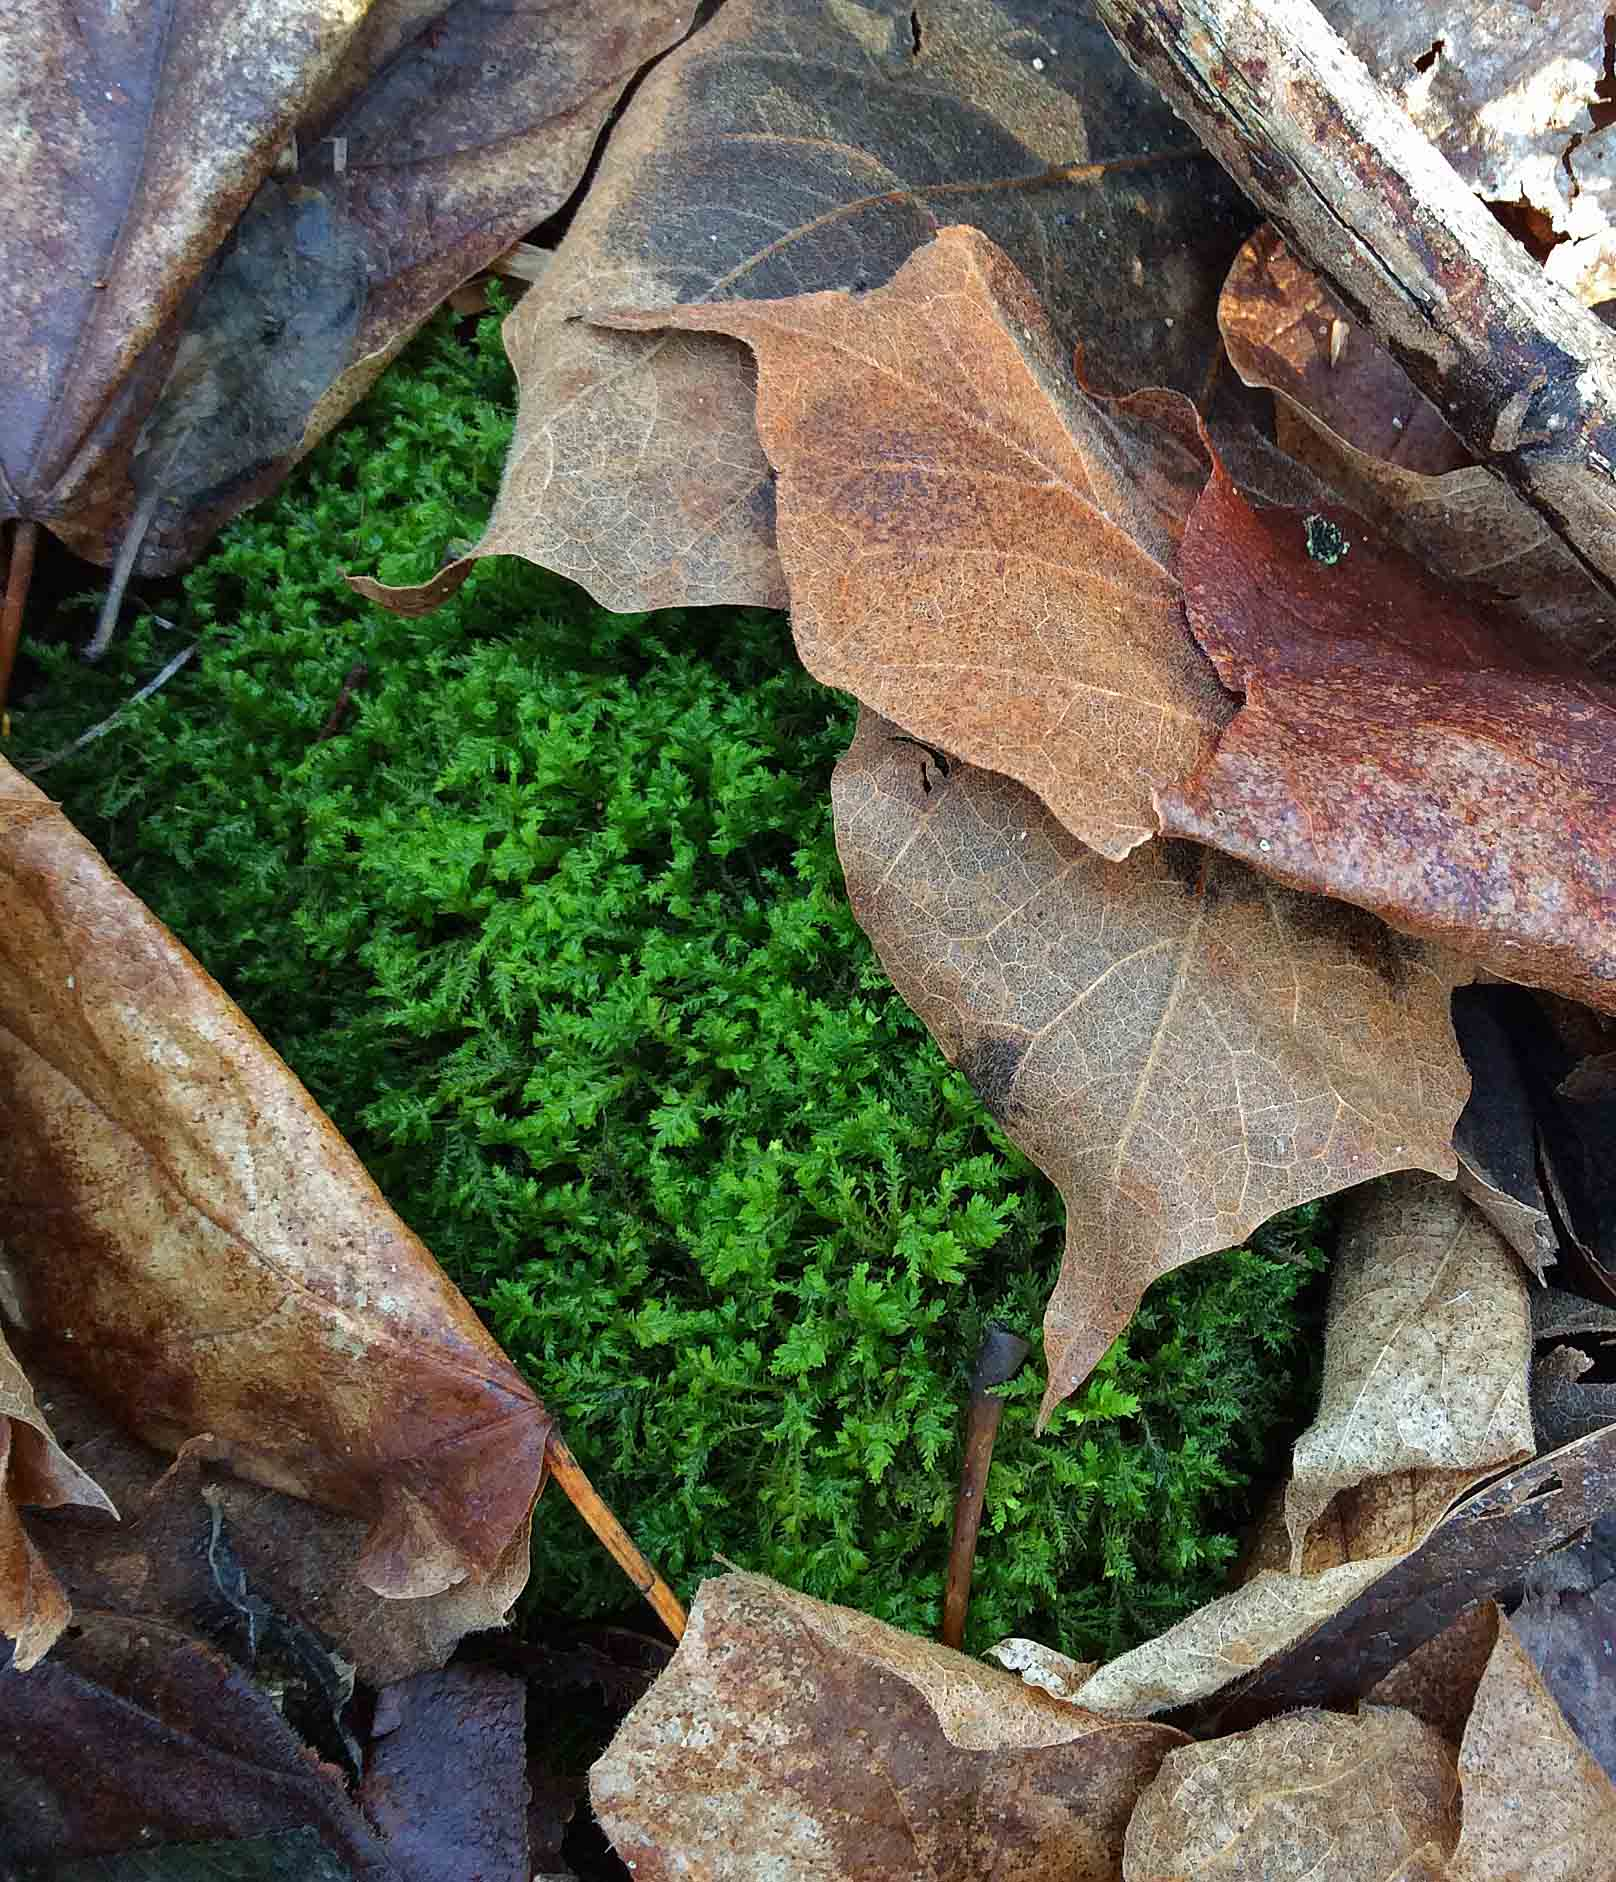 moss hiding under leaves